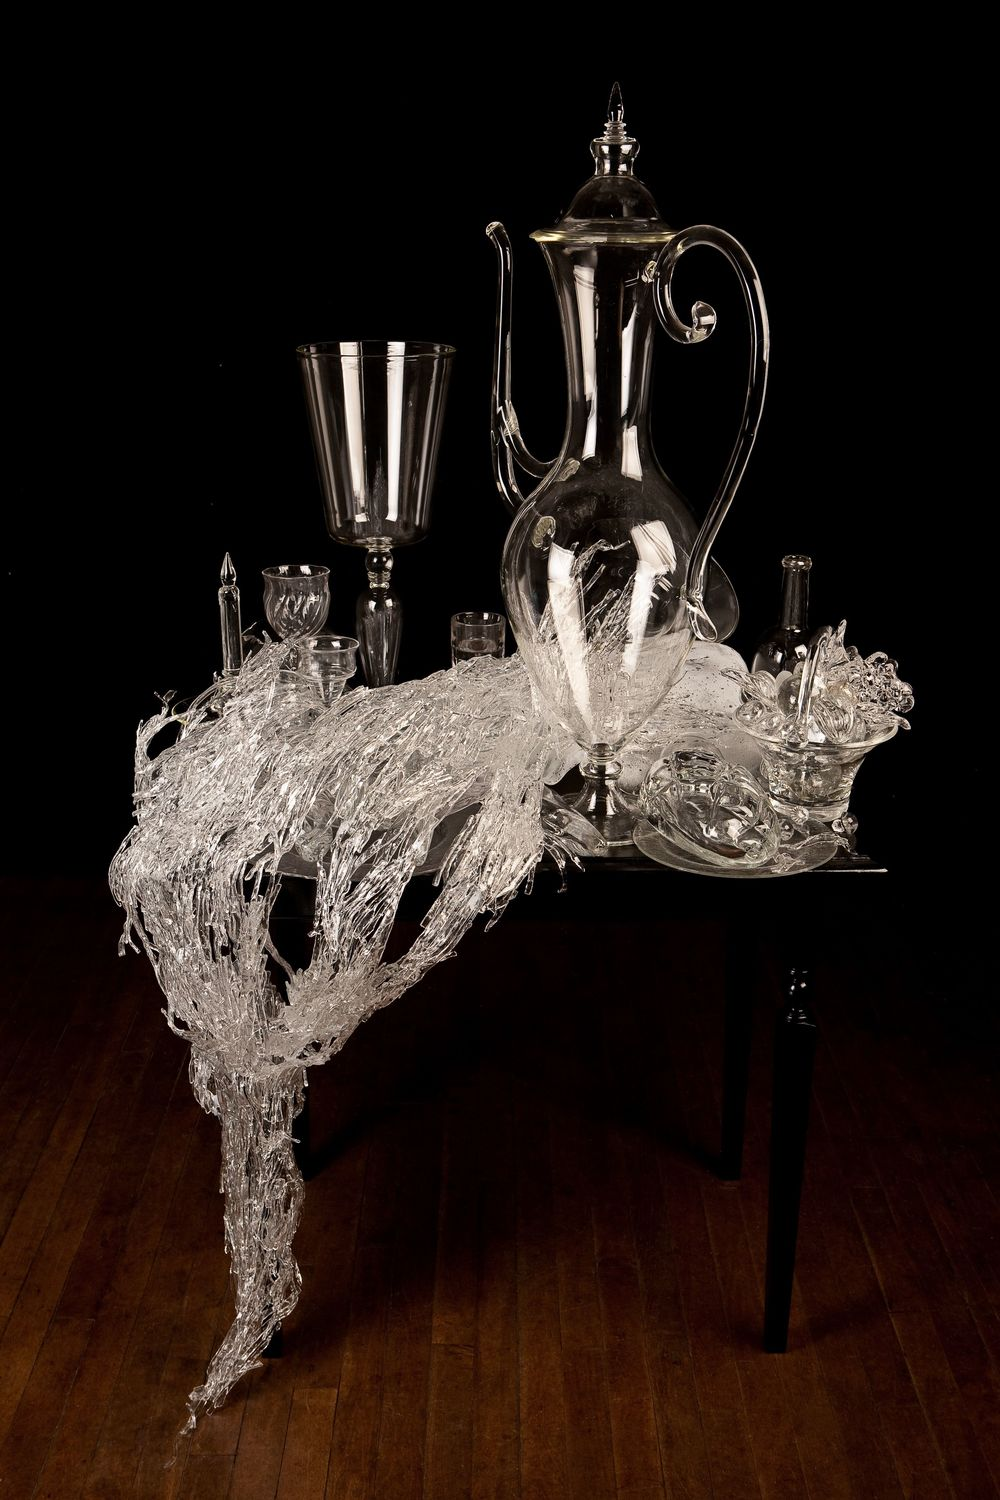 "Pitcher with Vine, 2011, 63"" x 44"" x 30"", glass, wood, paint, adhesive, photo credit: Robb Quinn"